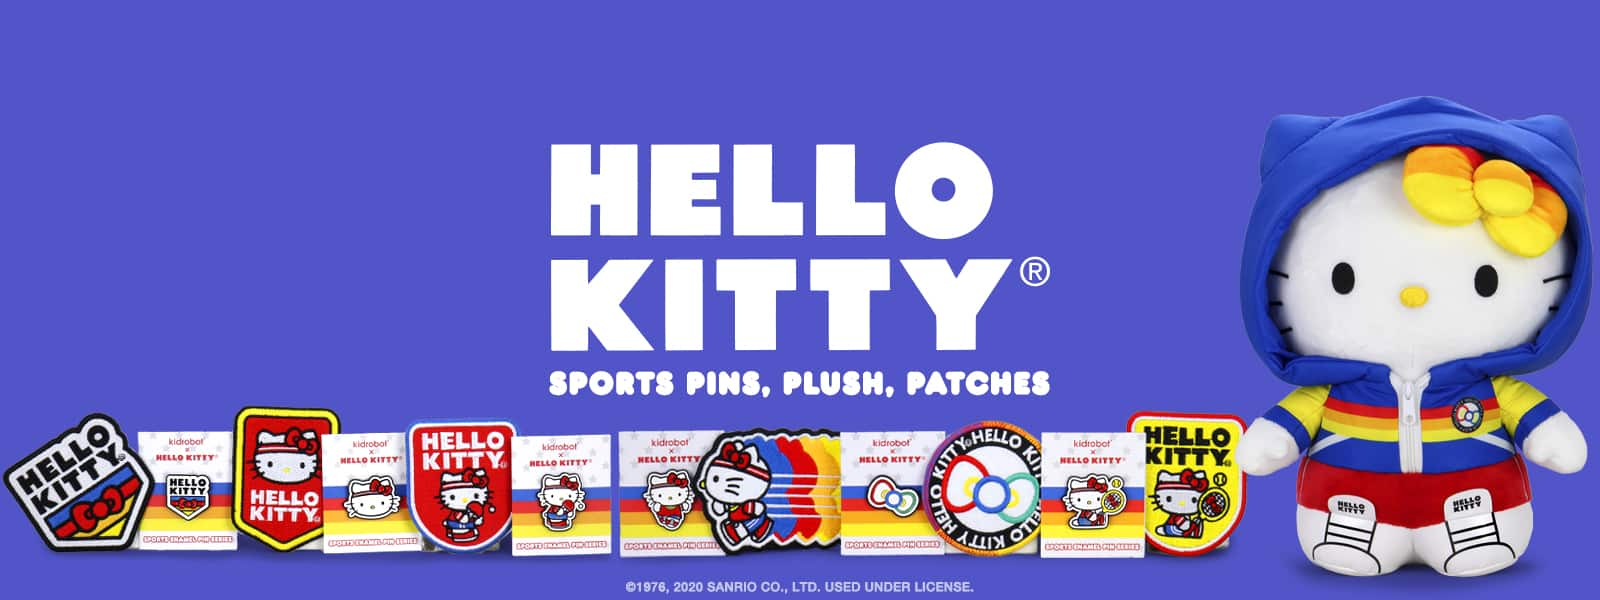 Kidrobot x Hello Kitty Sports Toy Collection